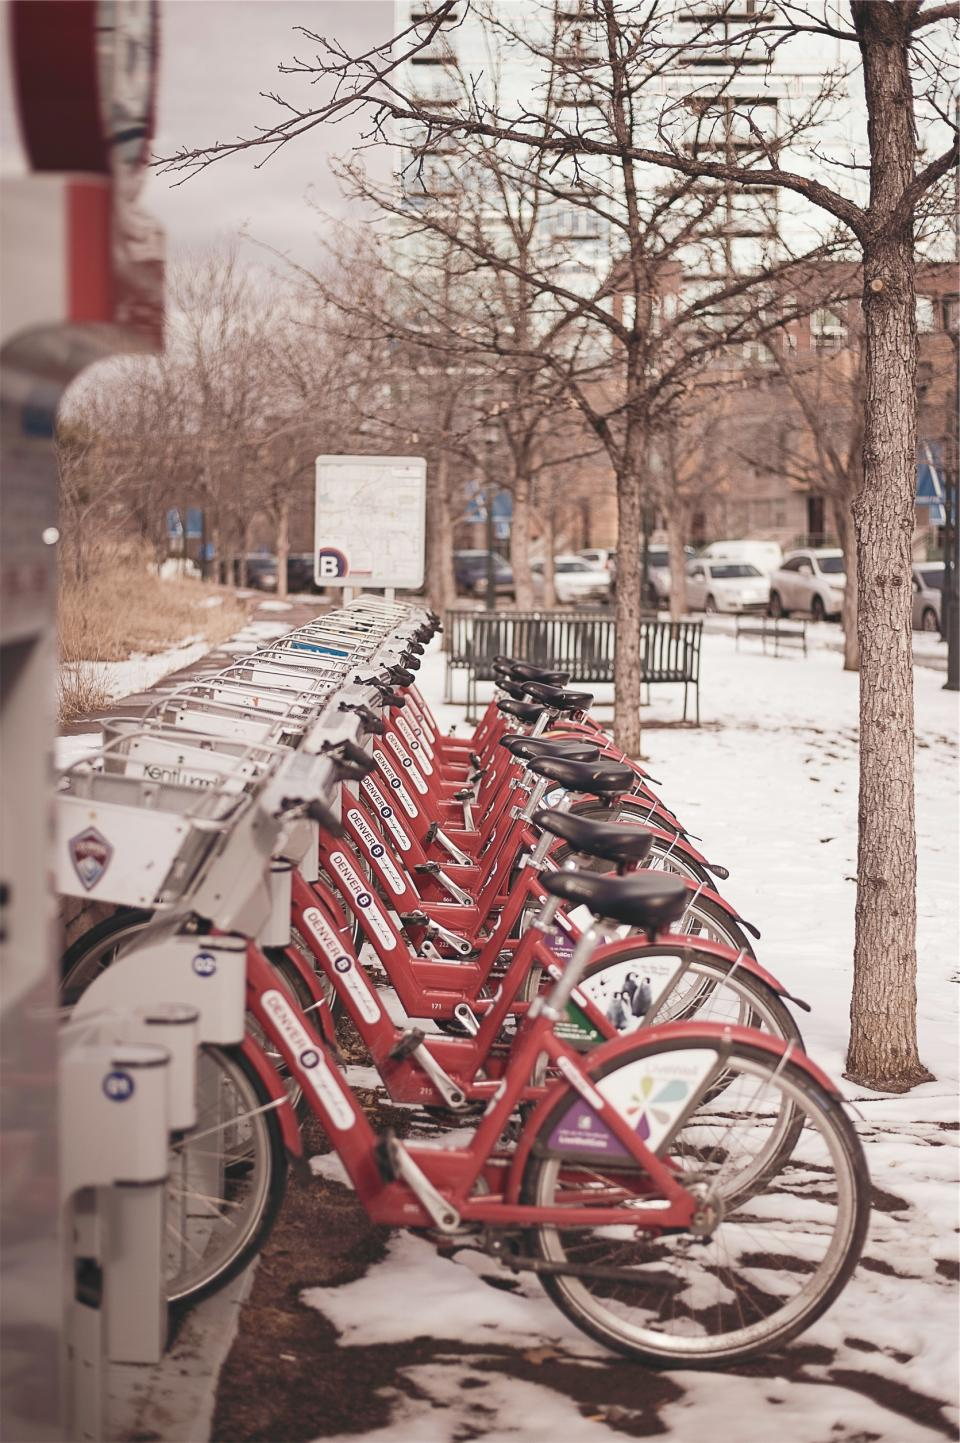 bikes, bicycles, Denver, city, winter, snow